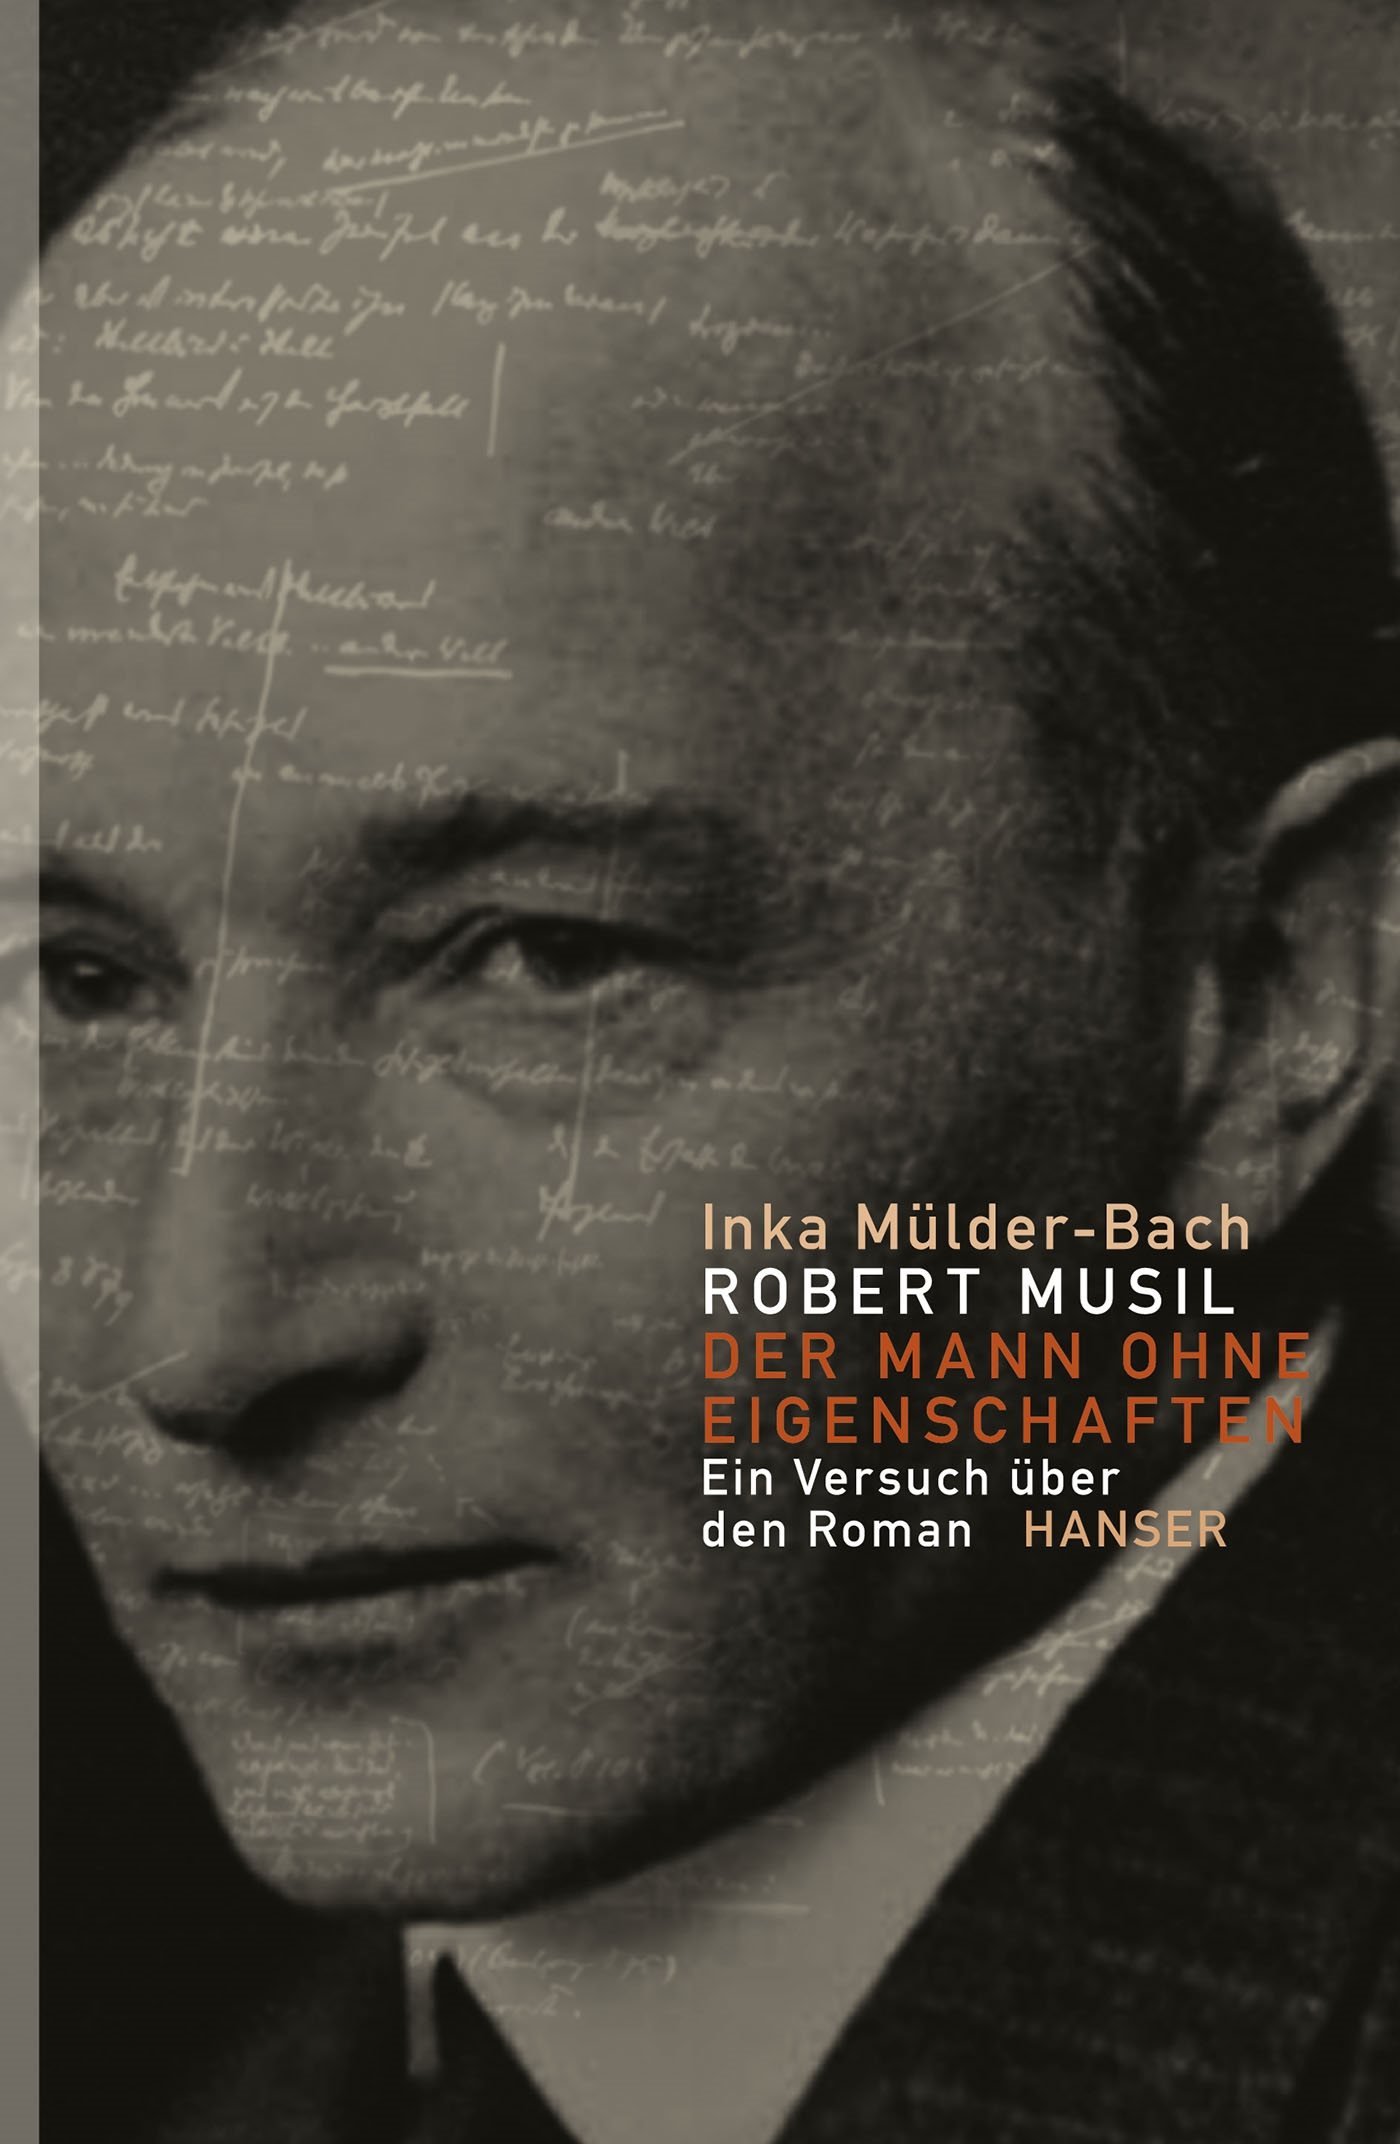 Robert Musil and The Man Without Qualities